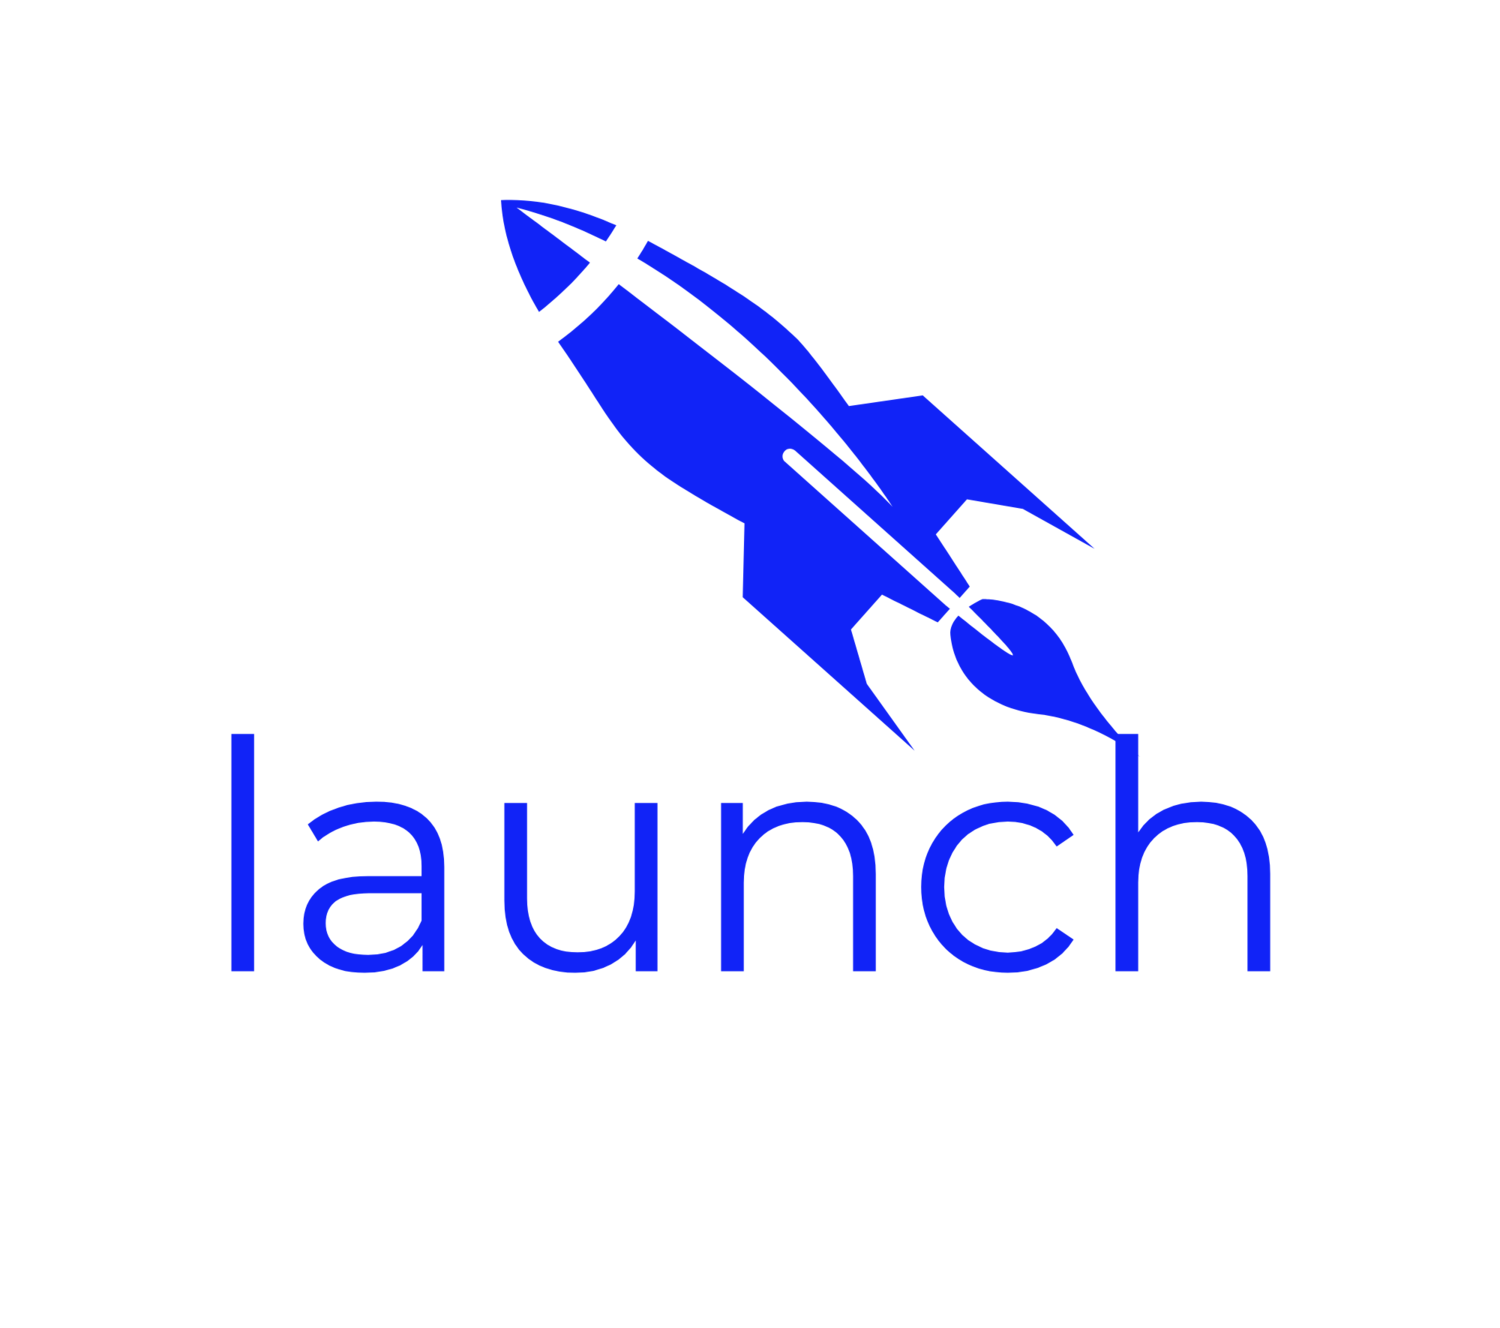 launch realty group